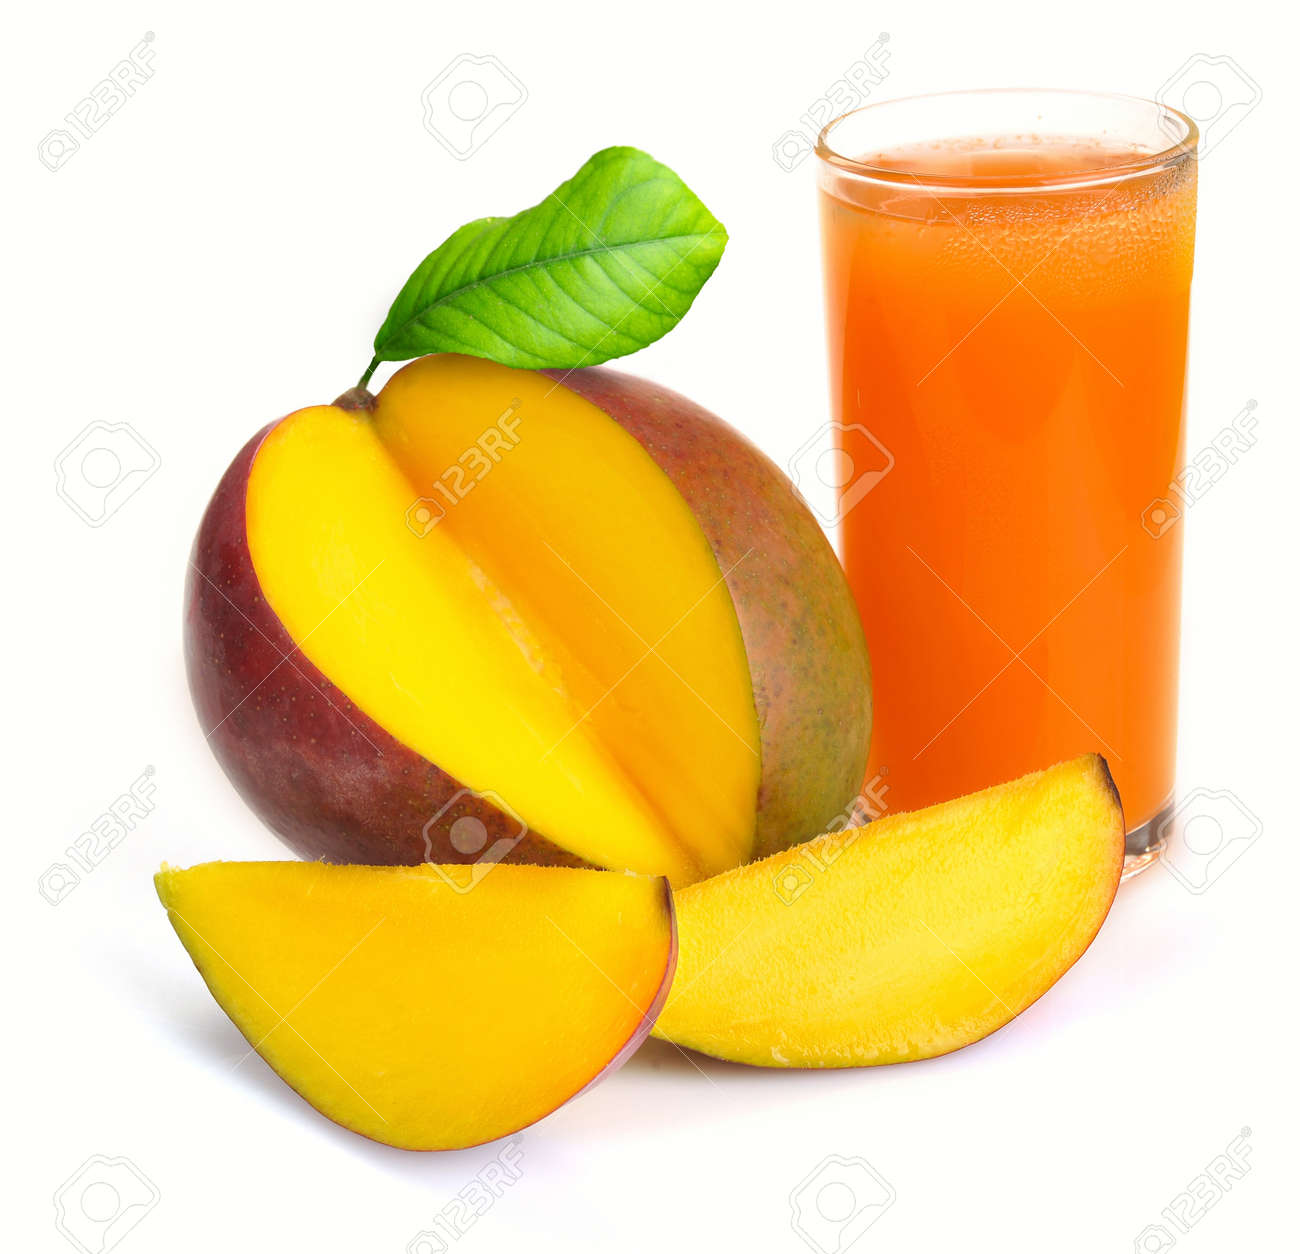 Mango: Mango Juice In A Glass Of Fruit Mango Stock Photos & Pictures  Royalty Free